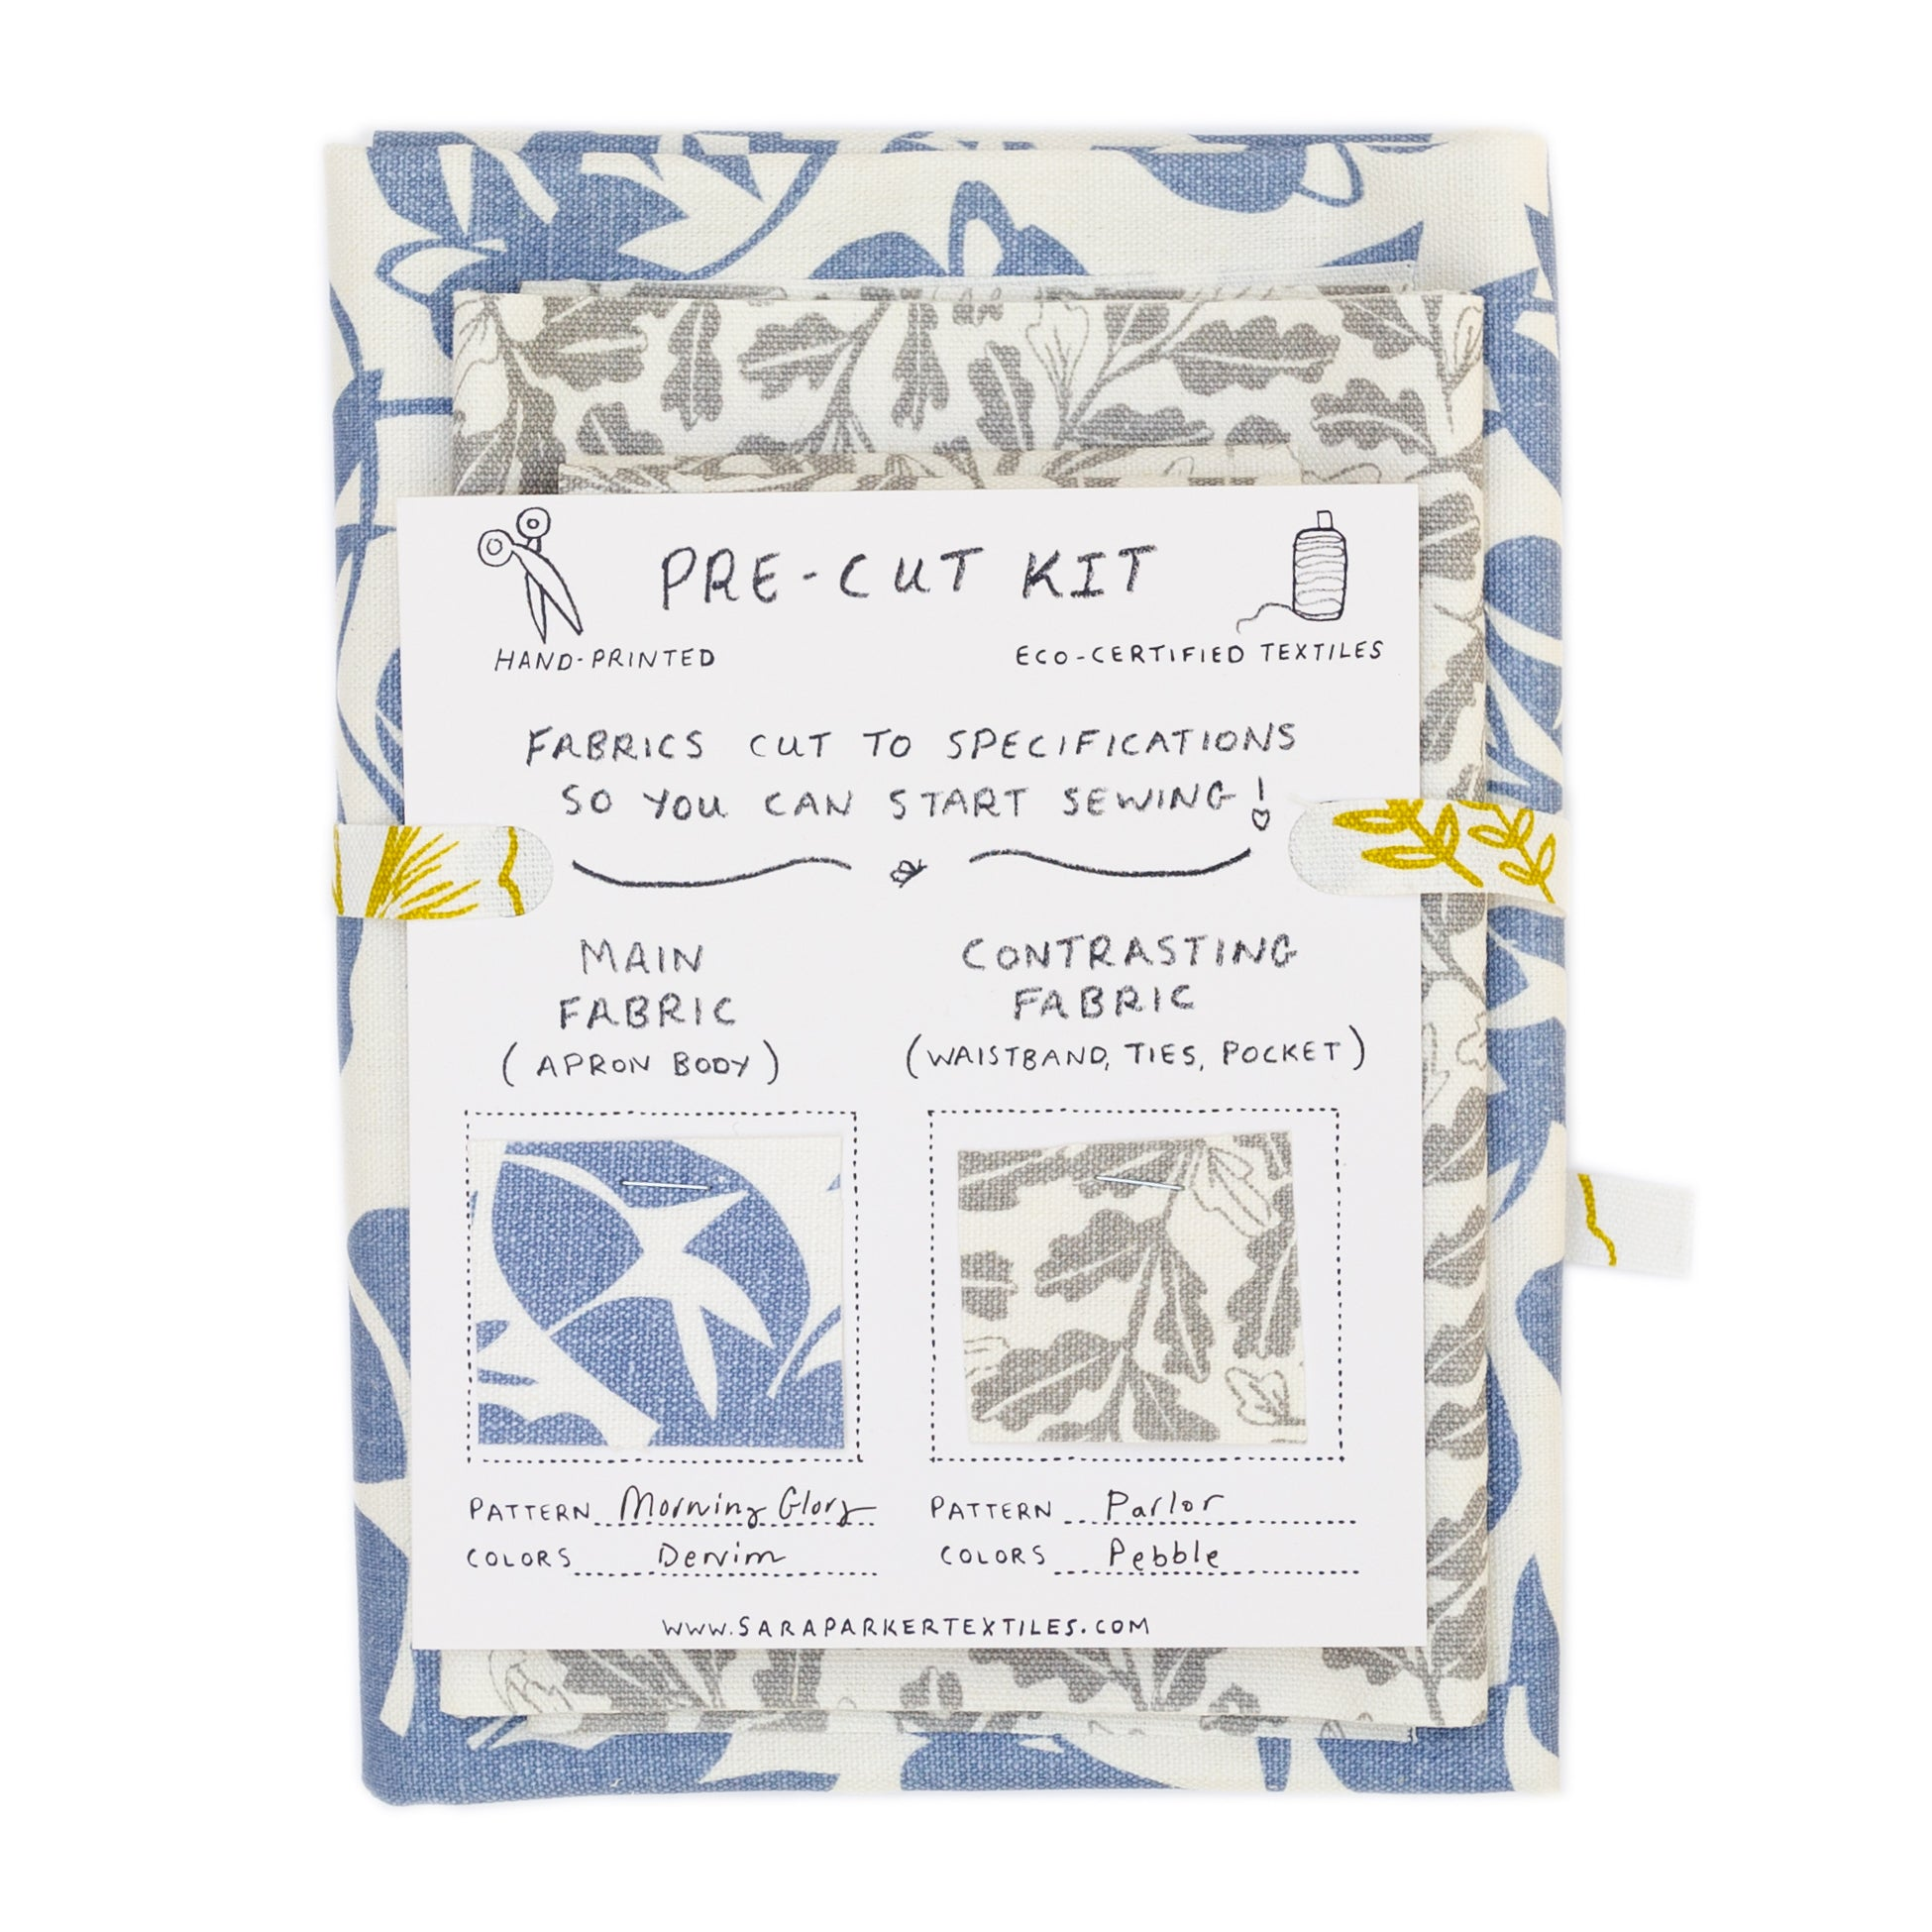 Apron kit with pre-cut screen printed fabric